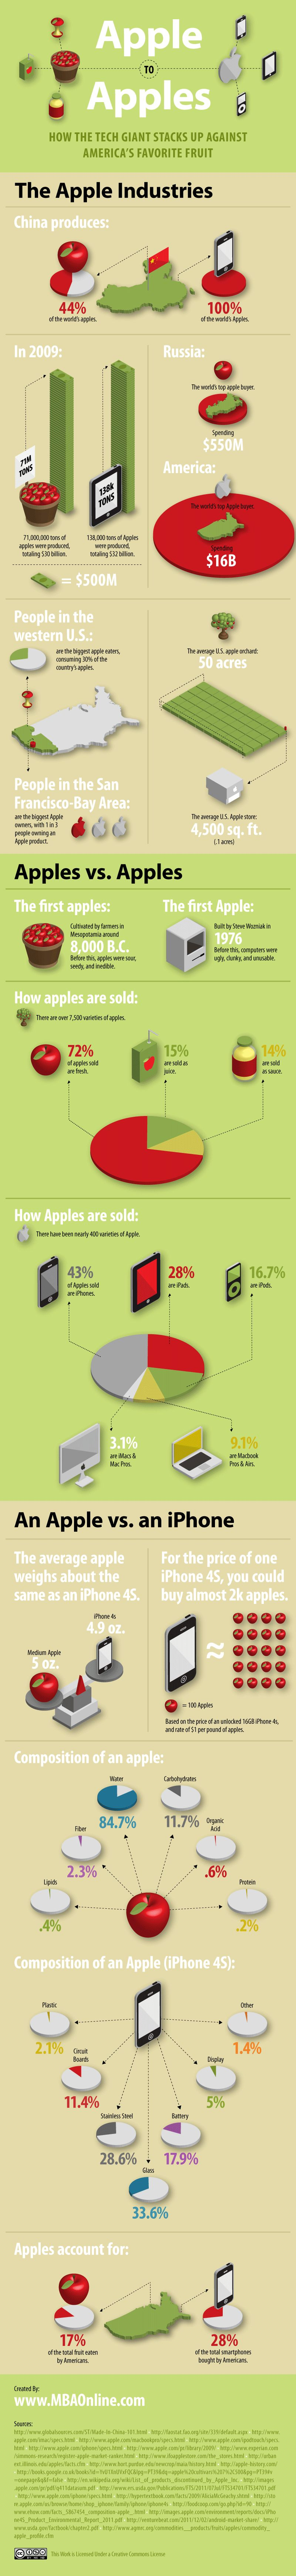 apple to apples how the tech giant stacks up against americas favorite fruit infographic